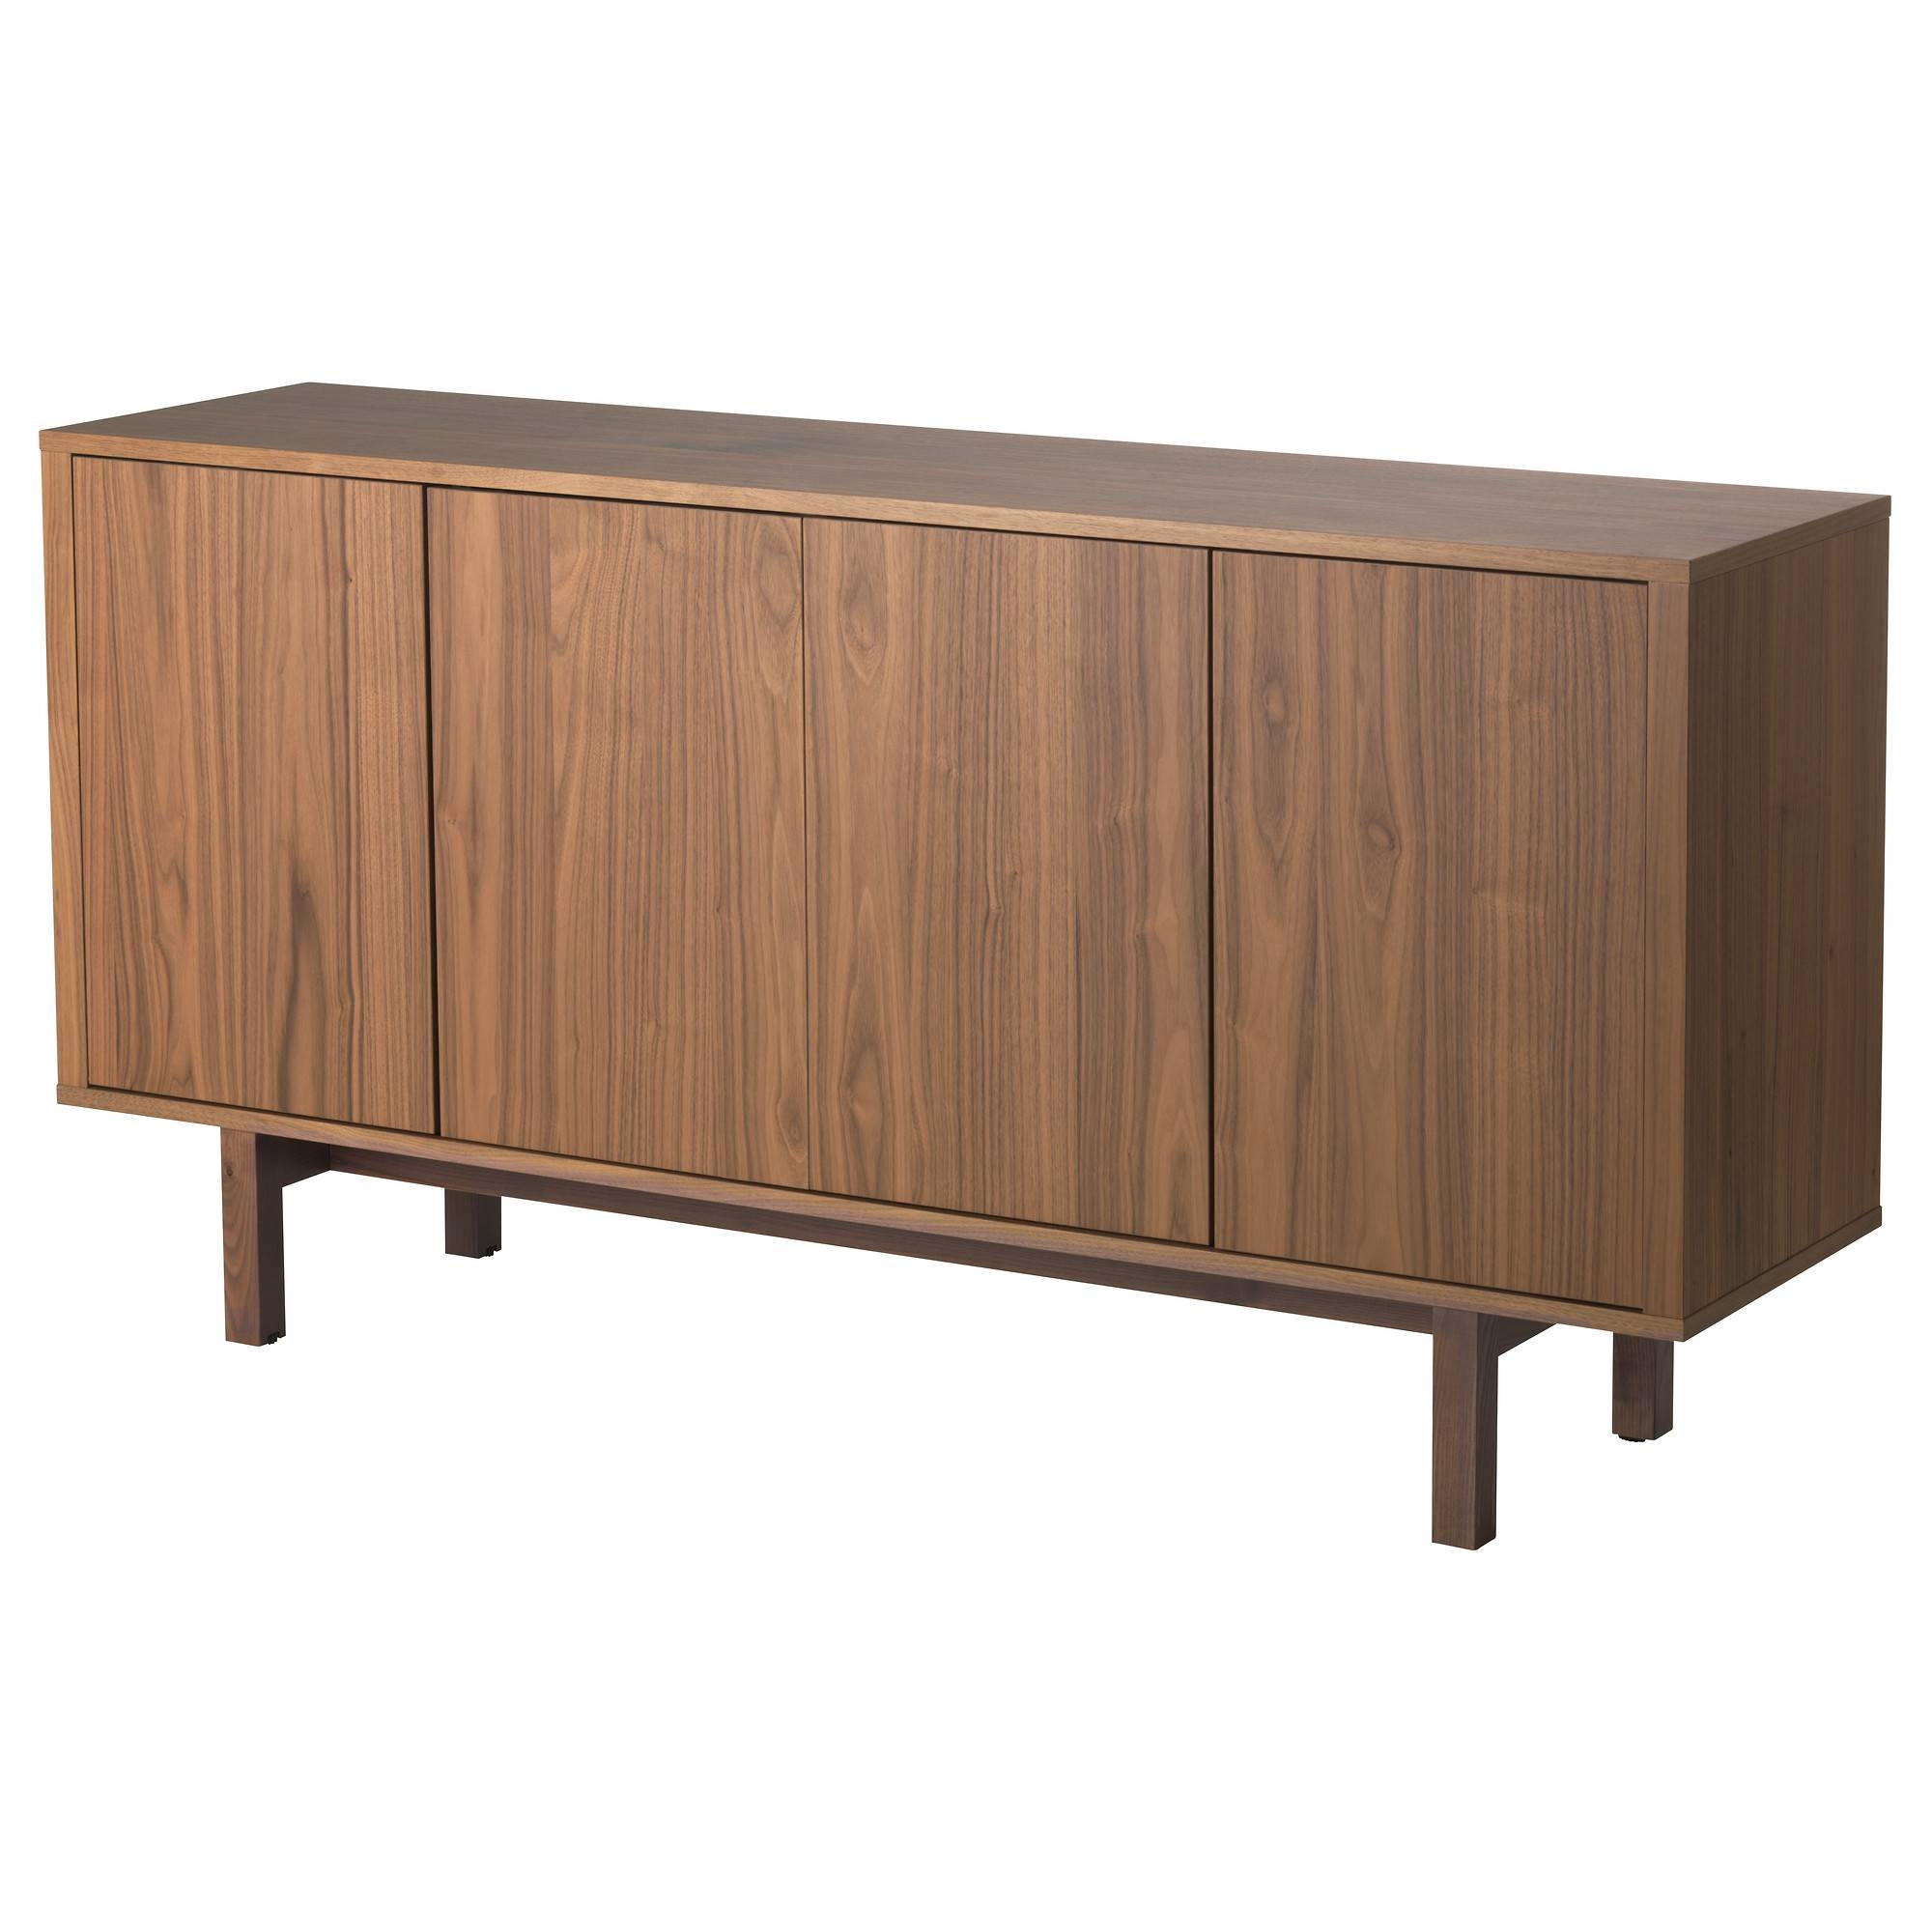 Stockholm Sideboard Walnut Veneer 160X81 Cm – Ikea Inside Black And Walnut Sideboard (#20 of 20)